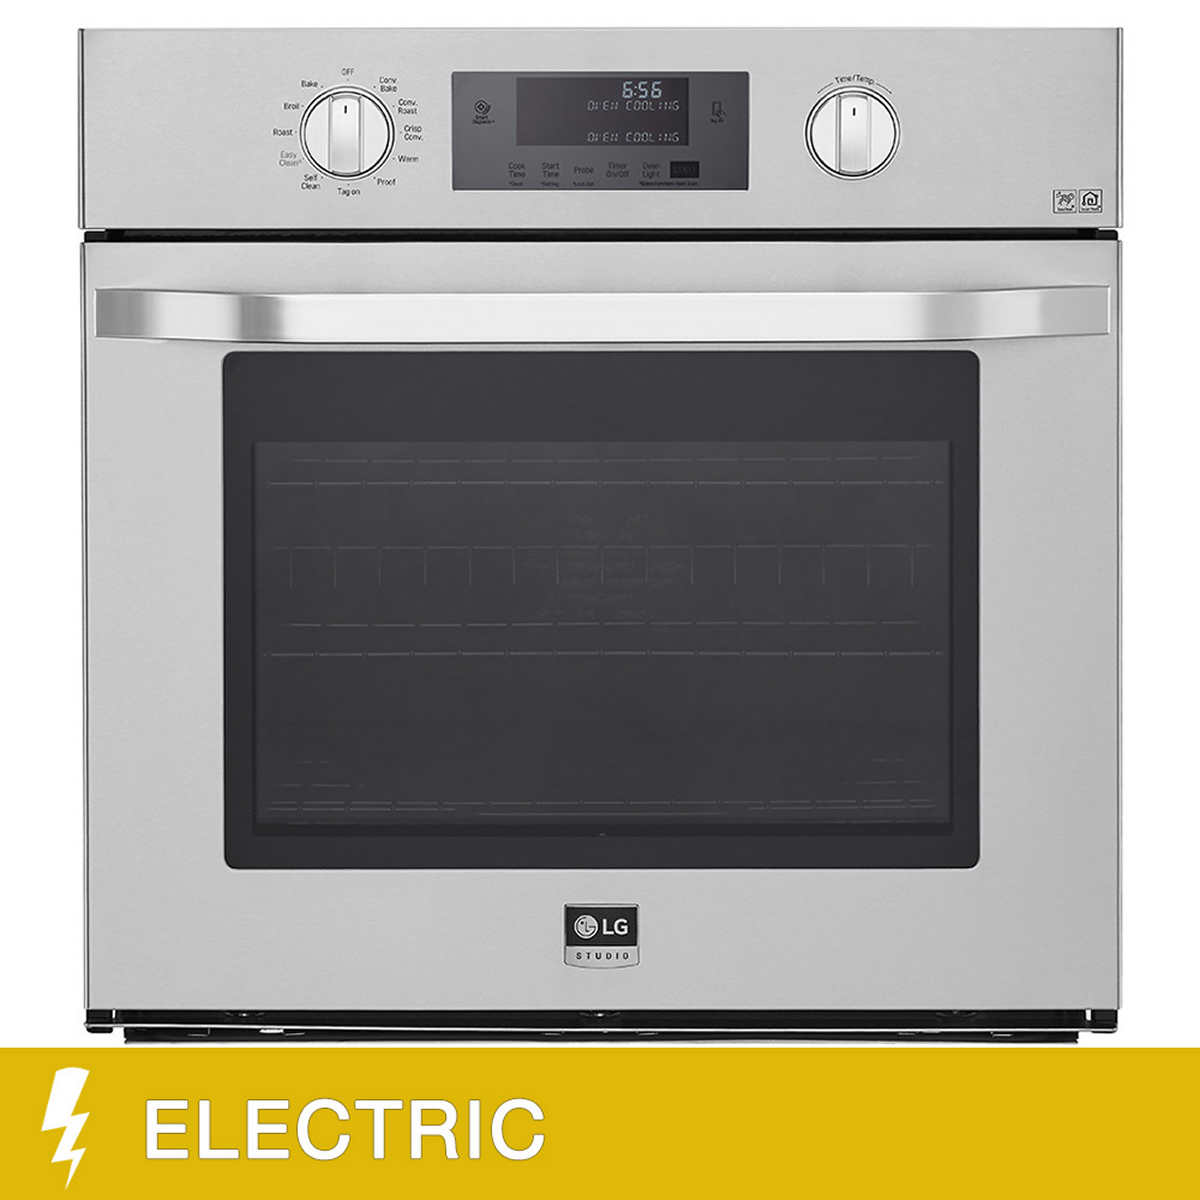 Uncategorized Trade In Kitchen Appliances appliances tahboub built in kitchen tboots us cooking costco kitchen